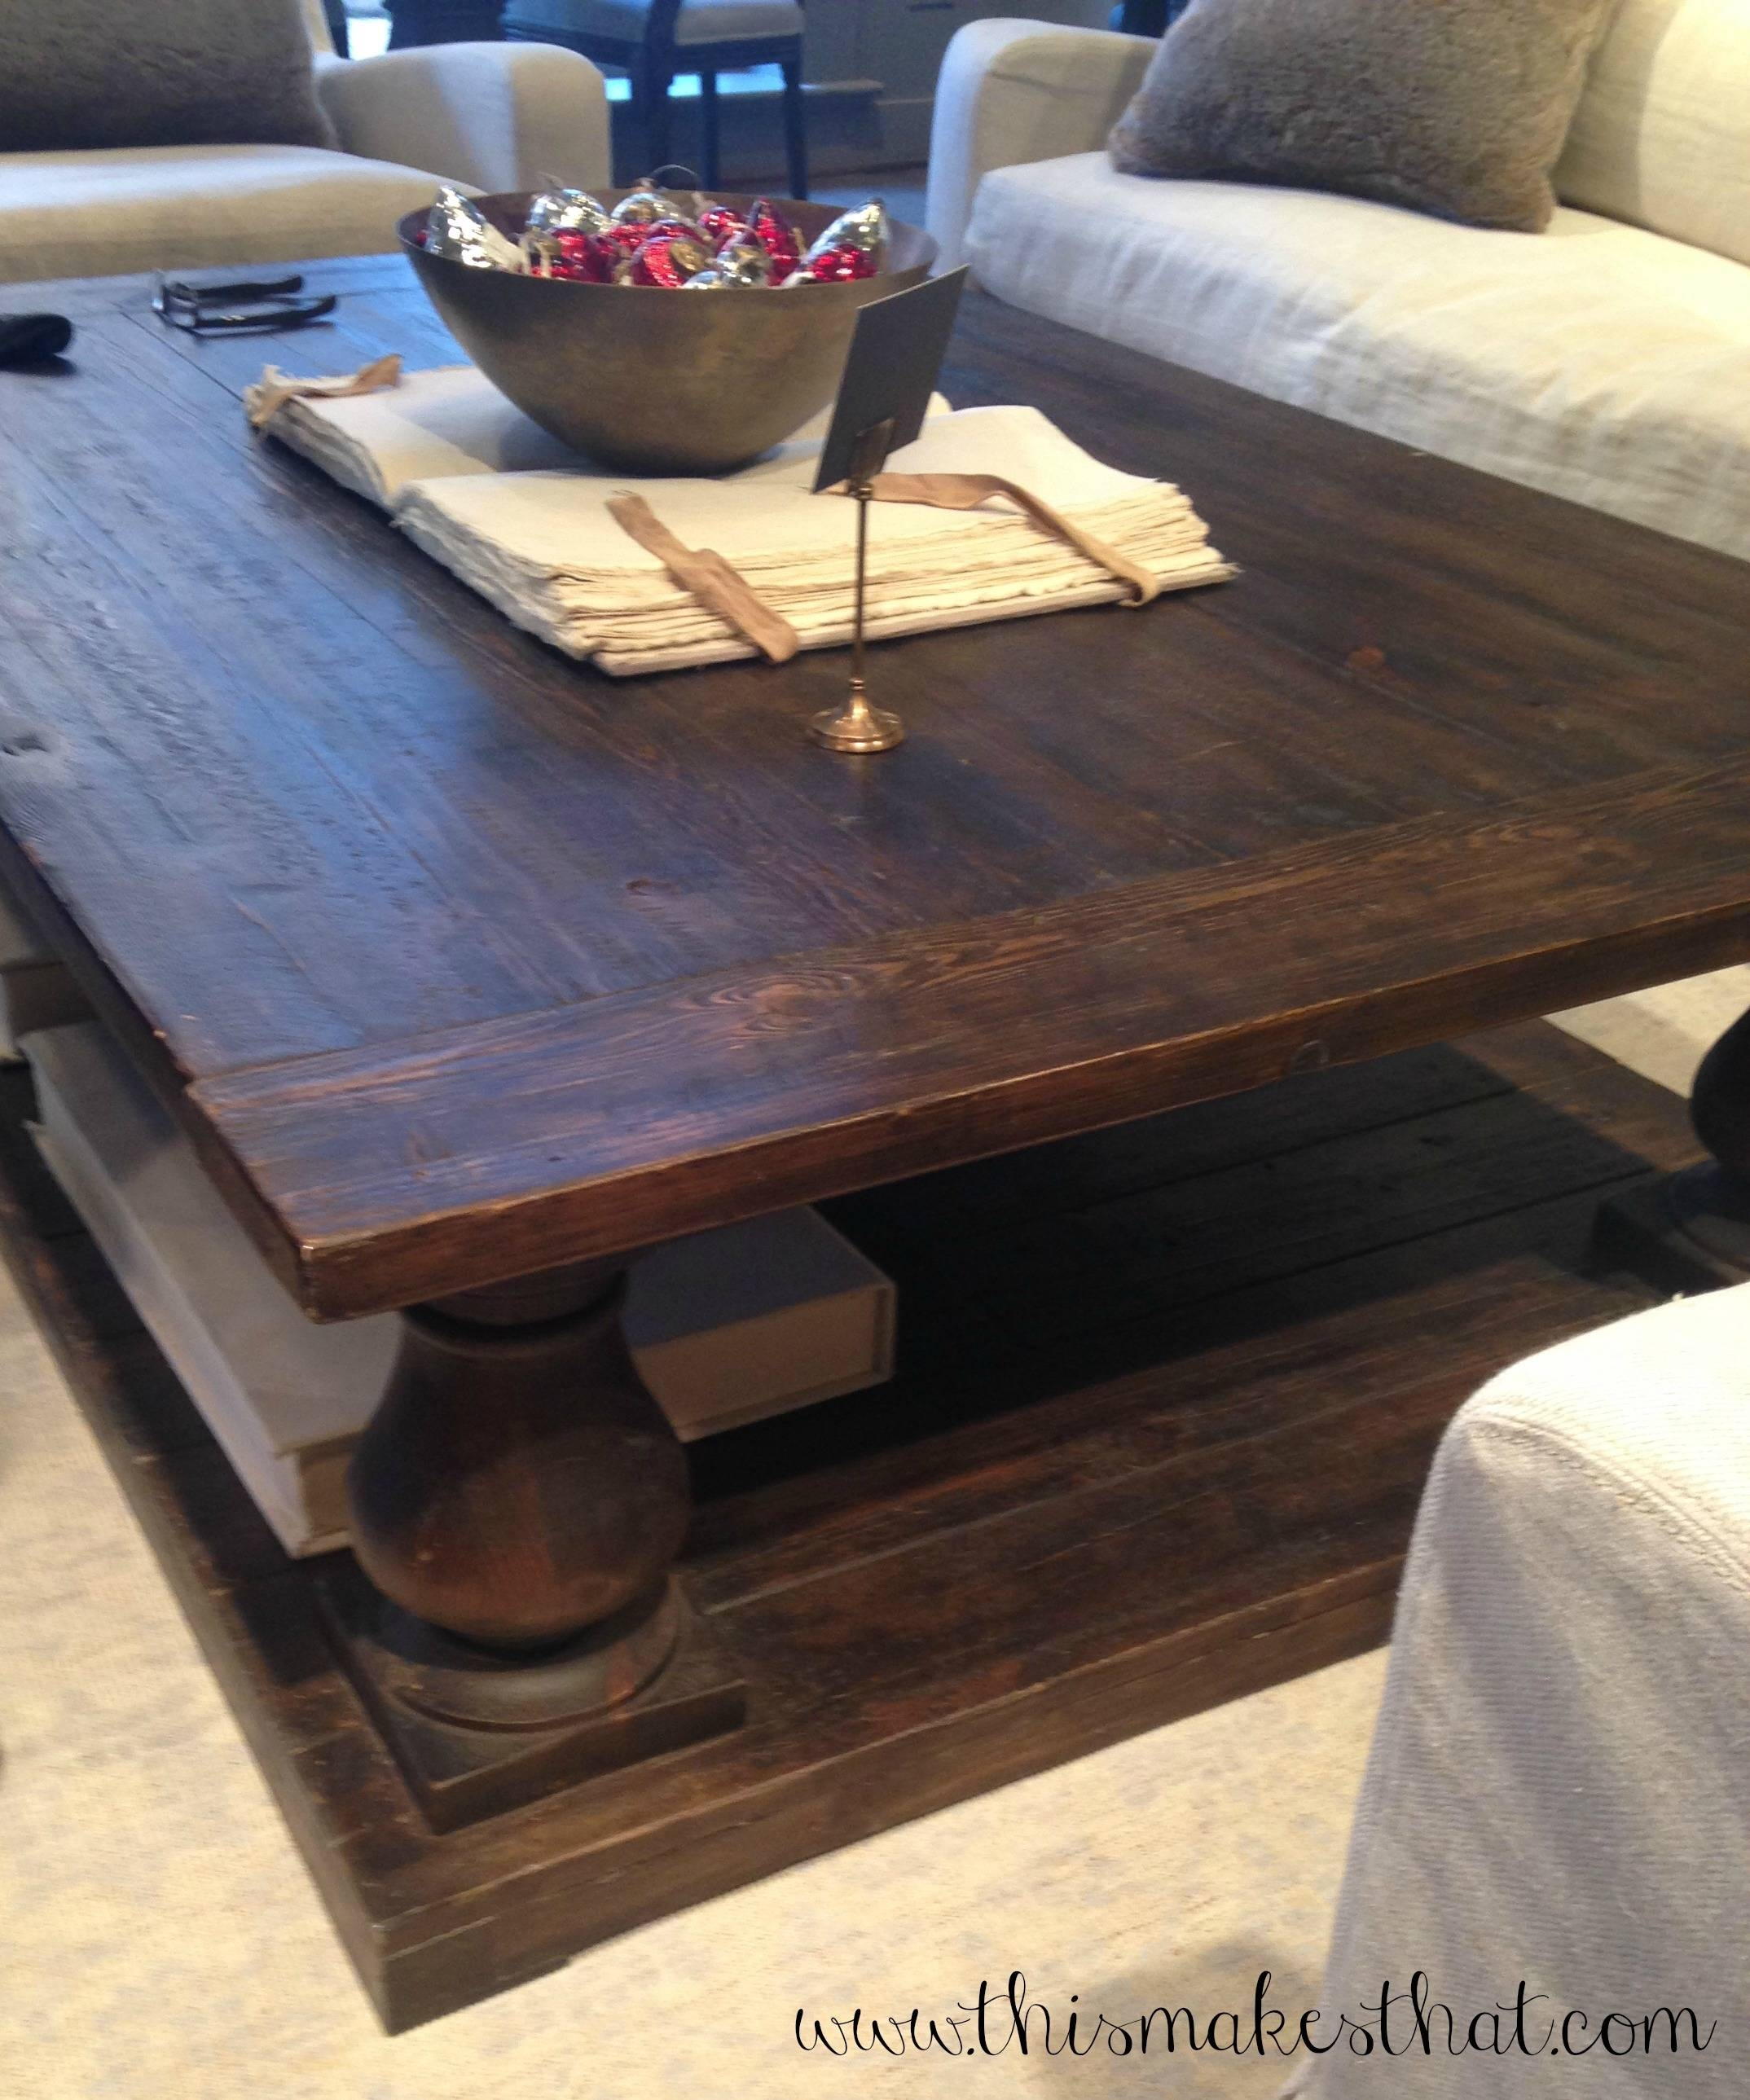 Aufregend Chinese Coffee Table Rustic Style With Stools Square intended for Rustic Style Coffee Tables (Image 2 of 30)